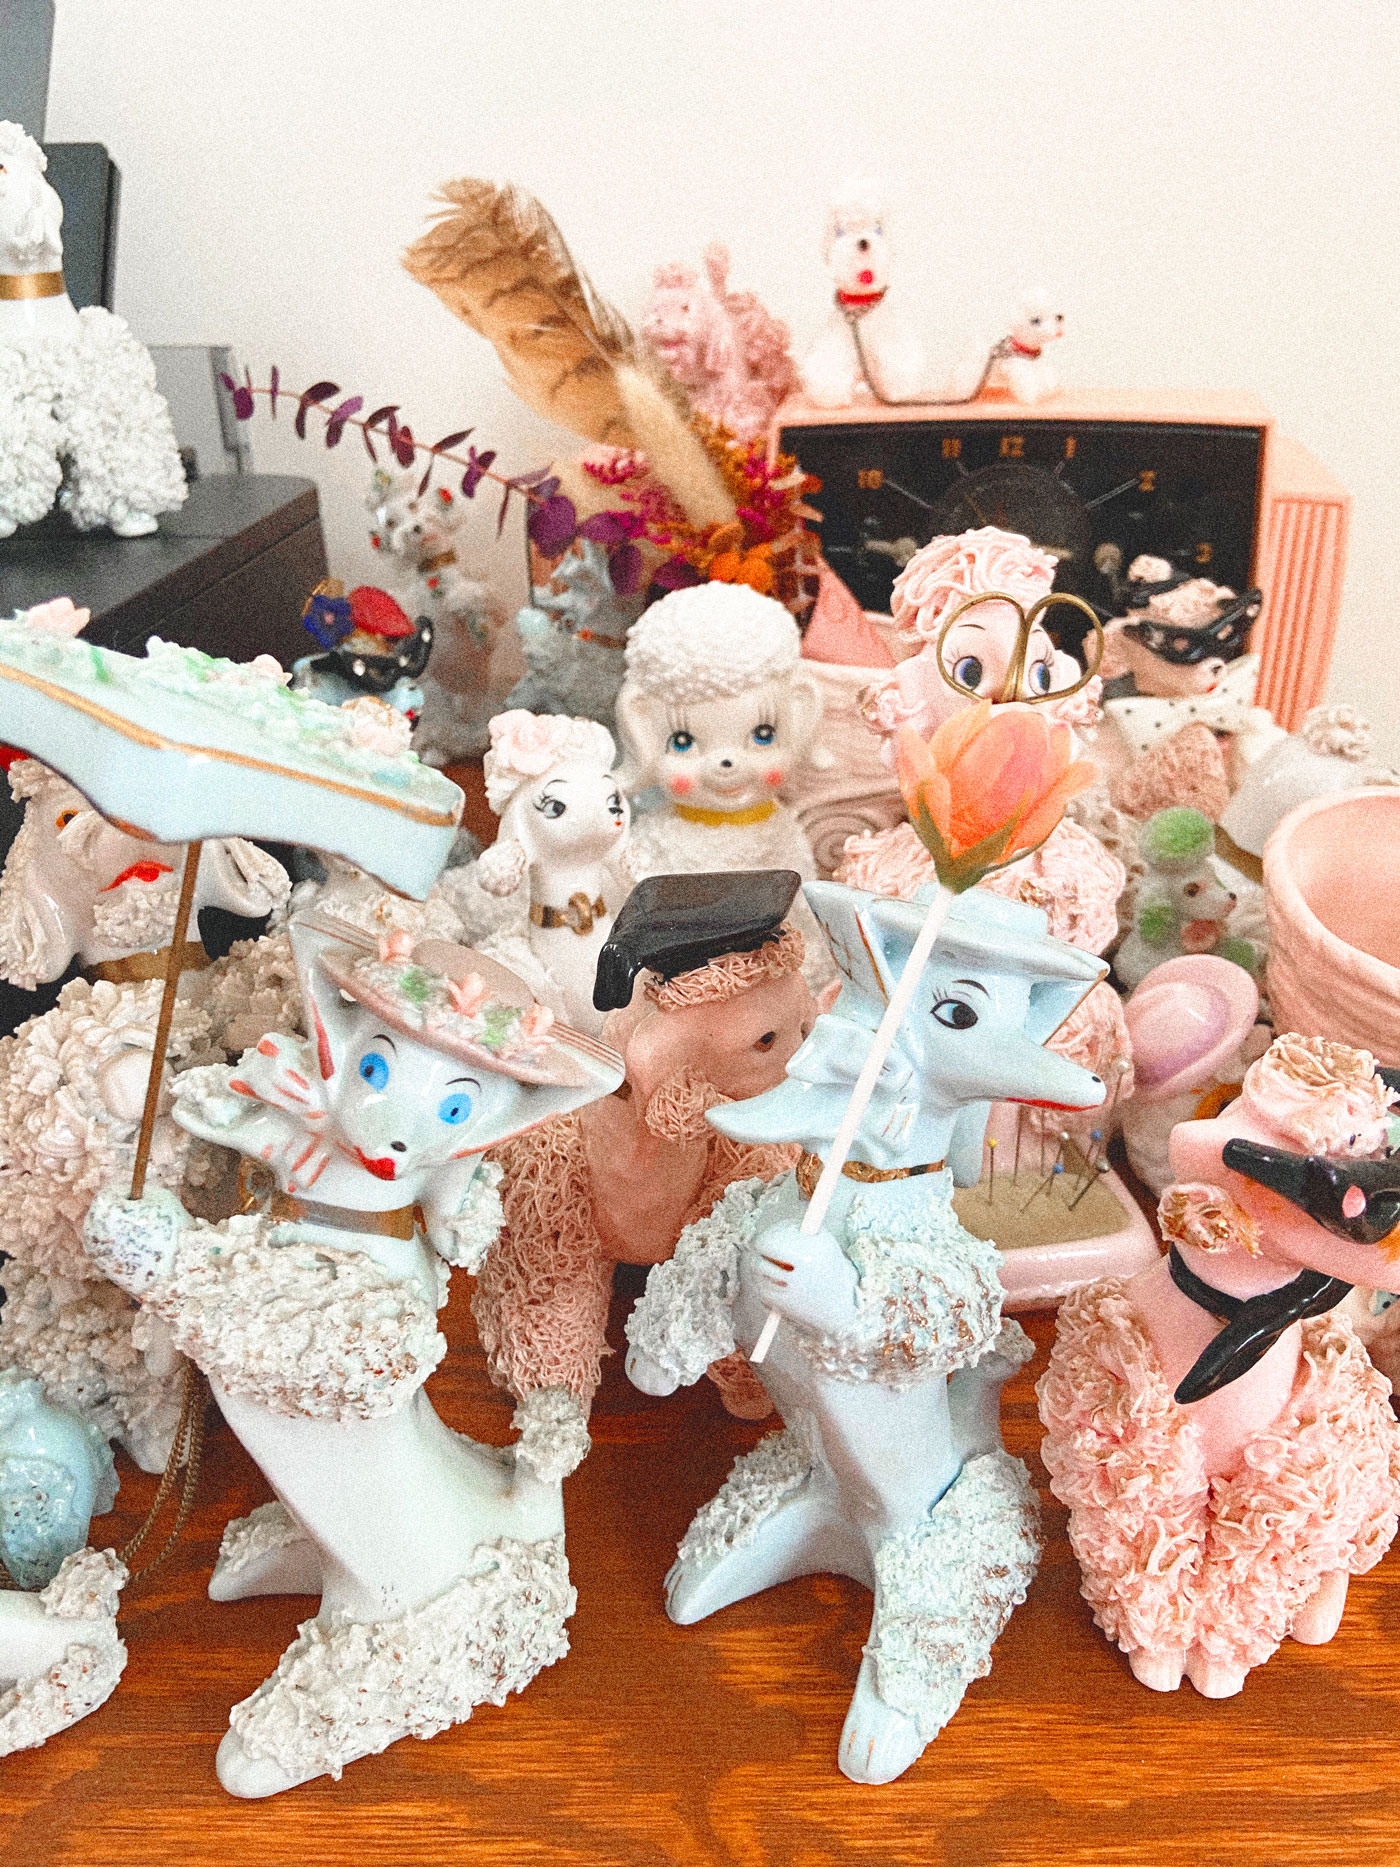 A collection of vintage poodles and other fun kitchery.